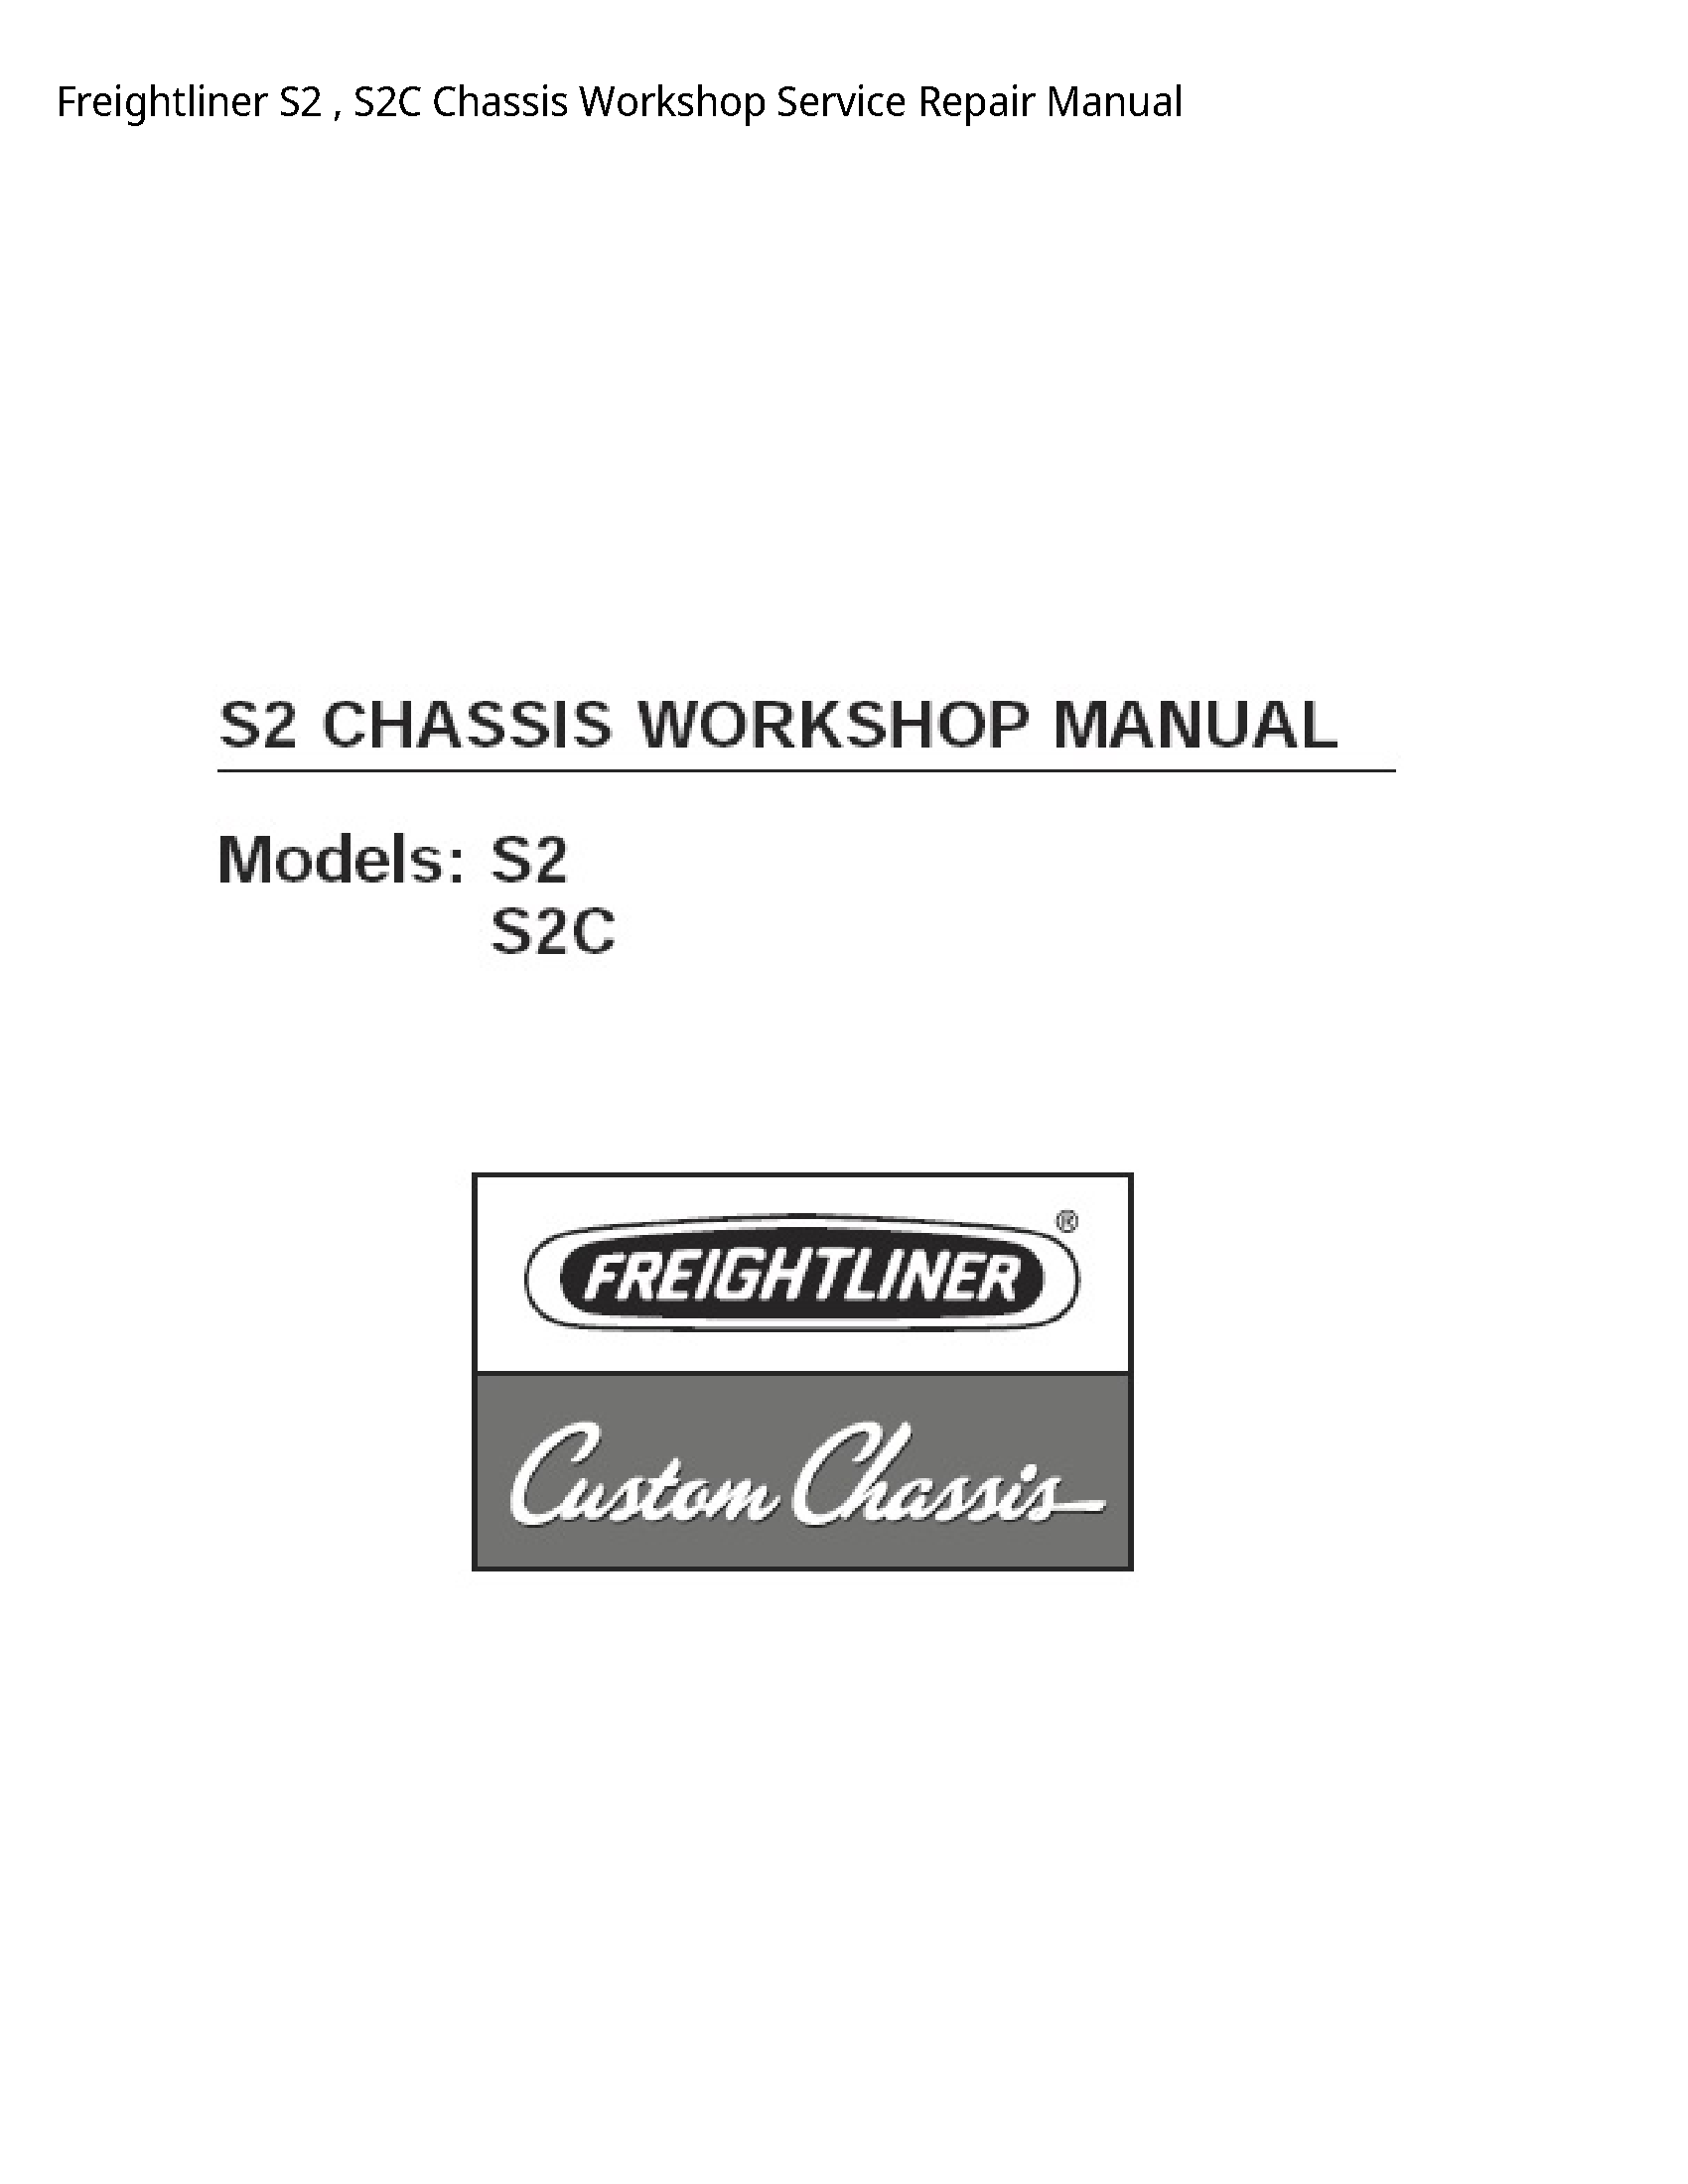 Freightliner S2 Chassis manual